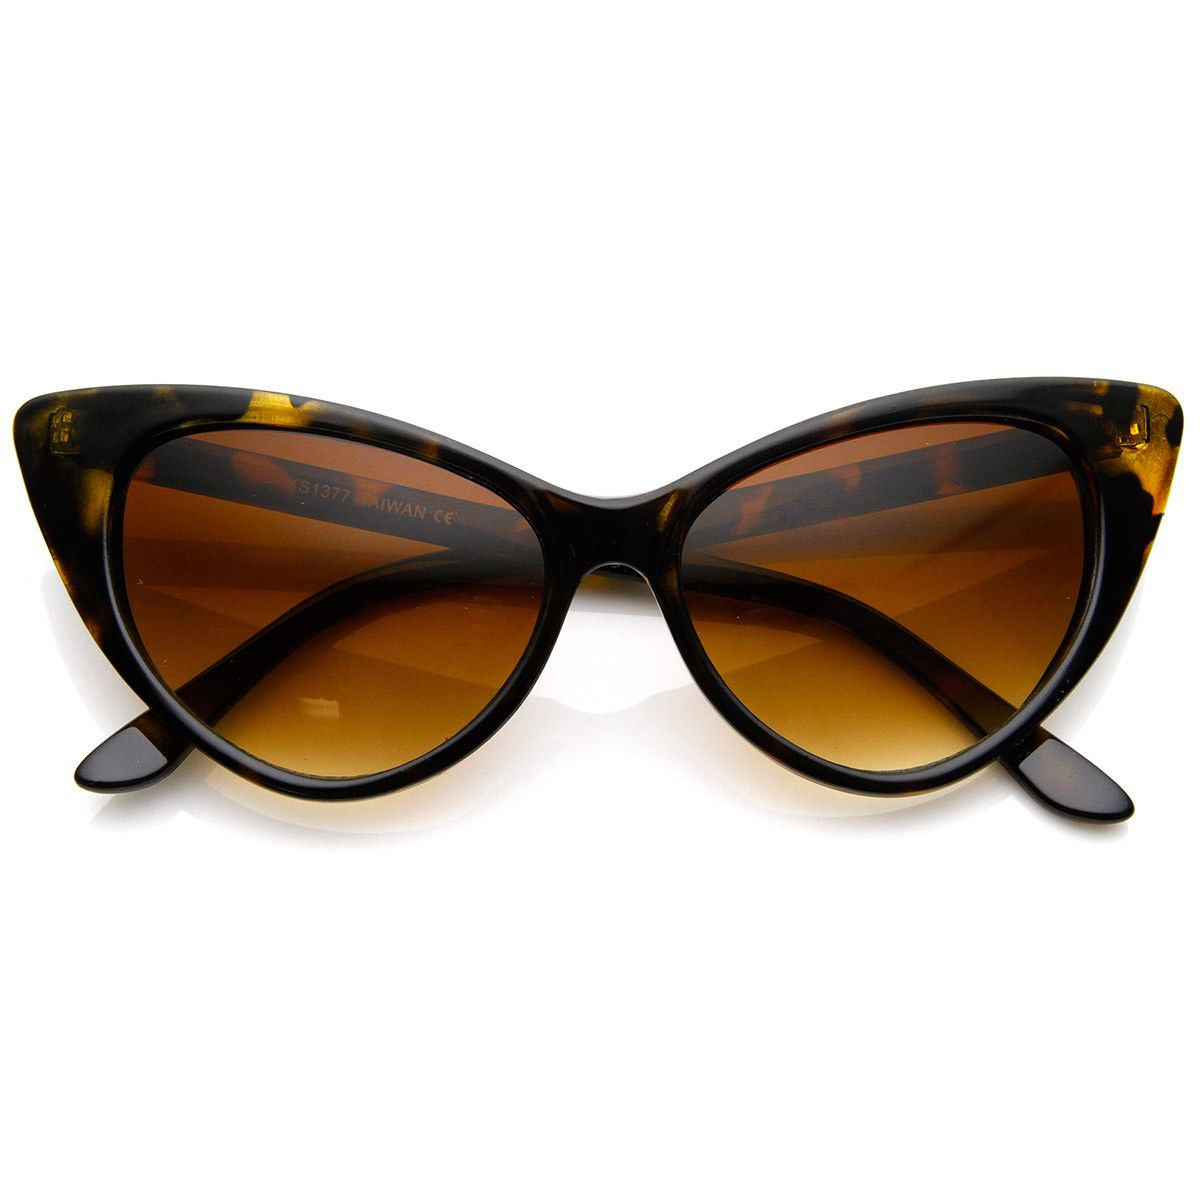 8cca3a2856 Super Cateyes Vintage Inspired Fashion Mod Chic High Pointed Cat-Eye  Sunglasses